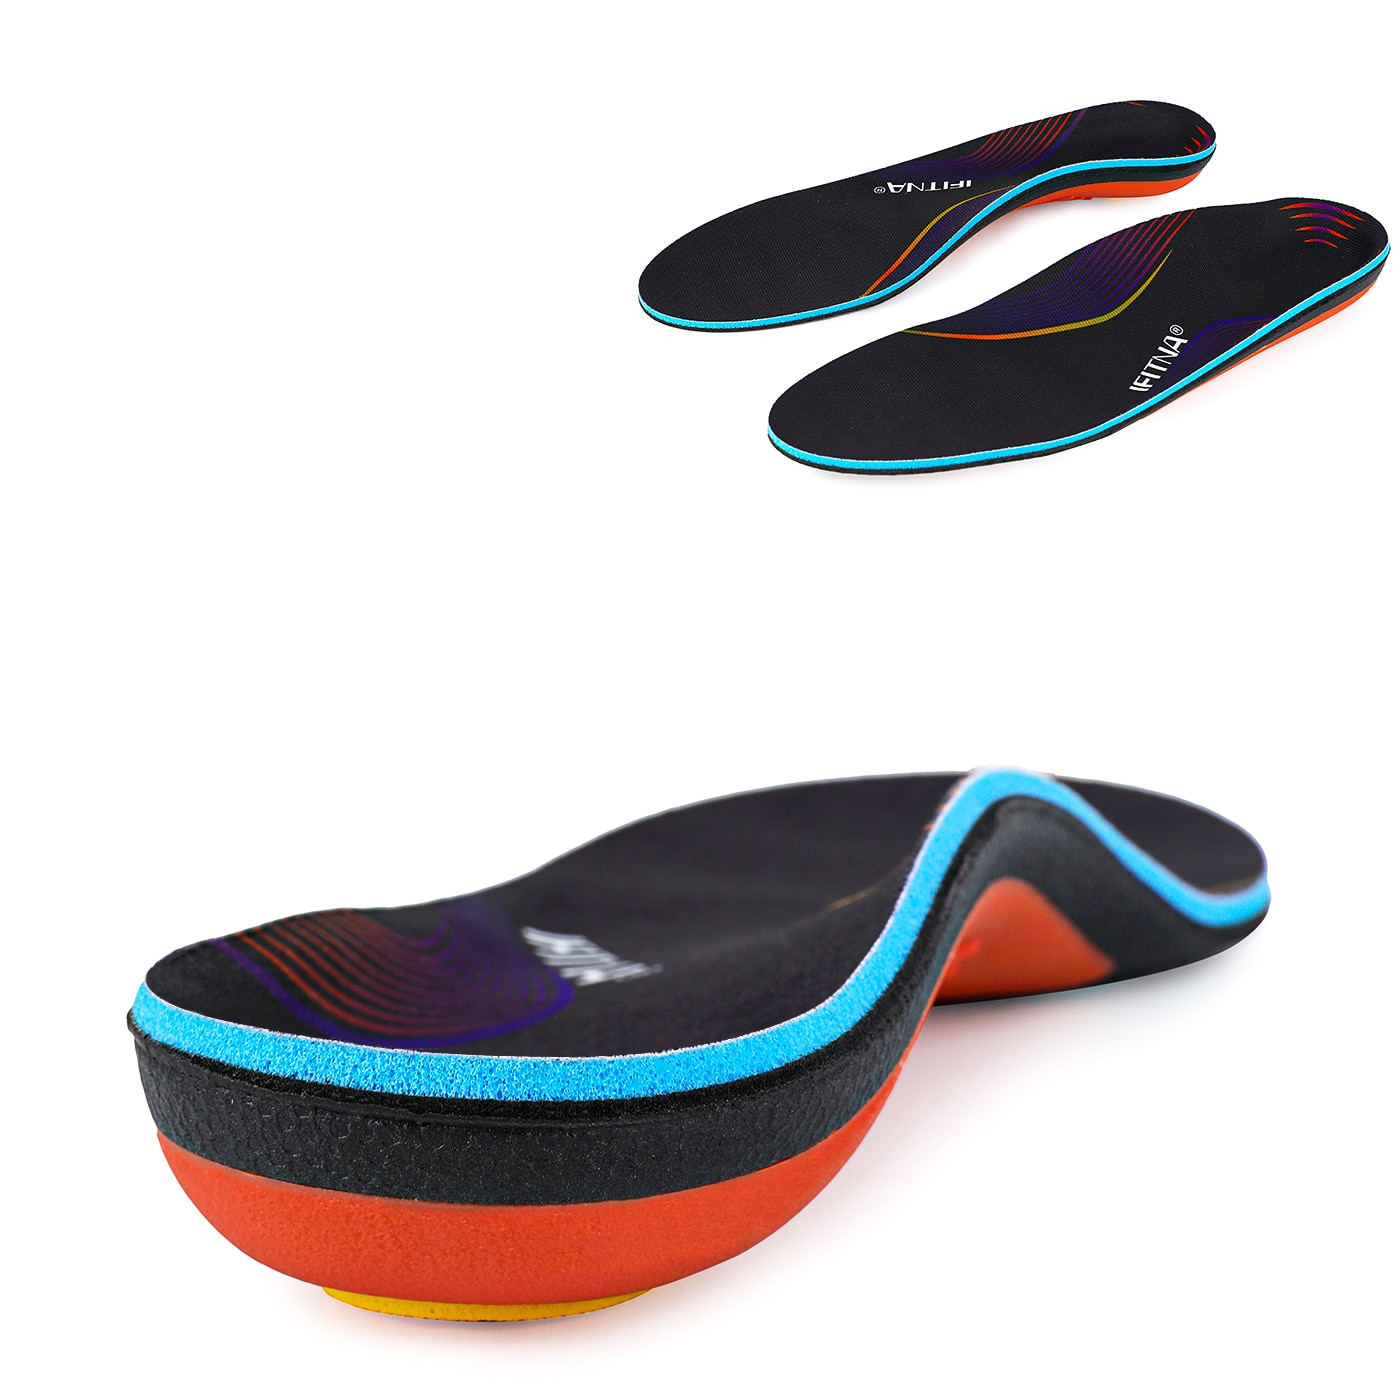 4d men and women universal sole flat insole flat foot insole support insole orthopedic massage mat sports insole nd 1 Unisex insert, flat-foot orthopedic insole, breathable and moisture-permeable, high-support insole with resilience